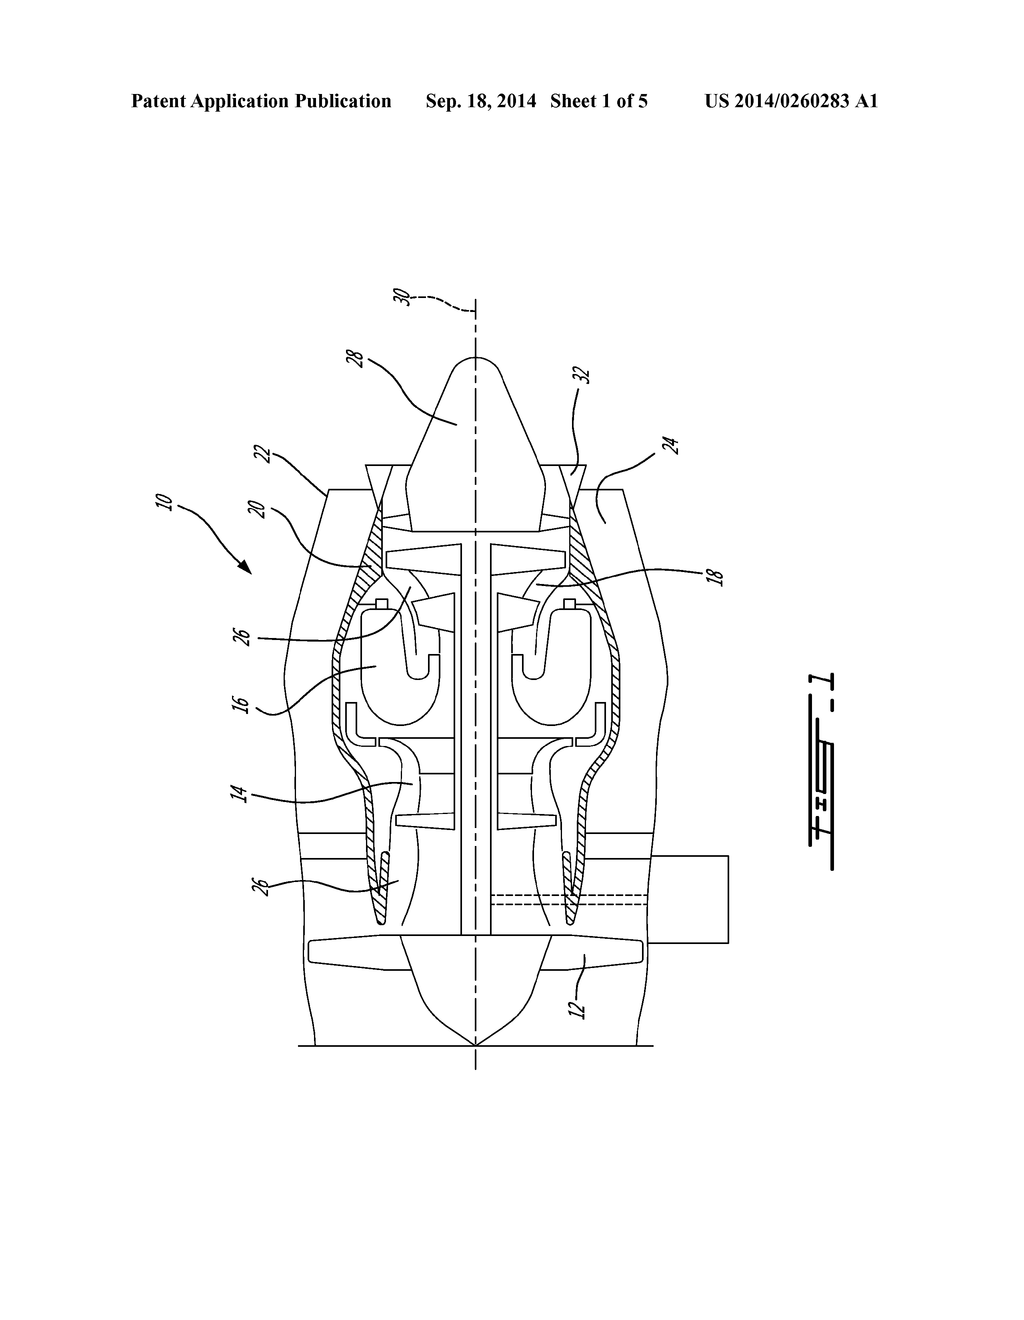 hight resolution of gas turbine engine exhaust mixer with aerodynamic struts diagram schematic and image 02